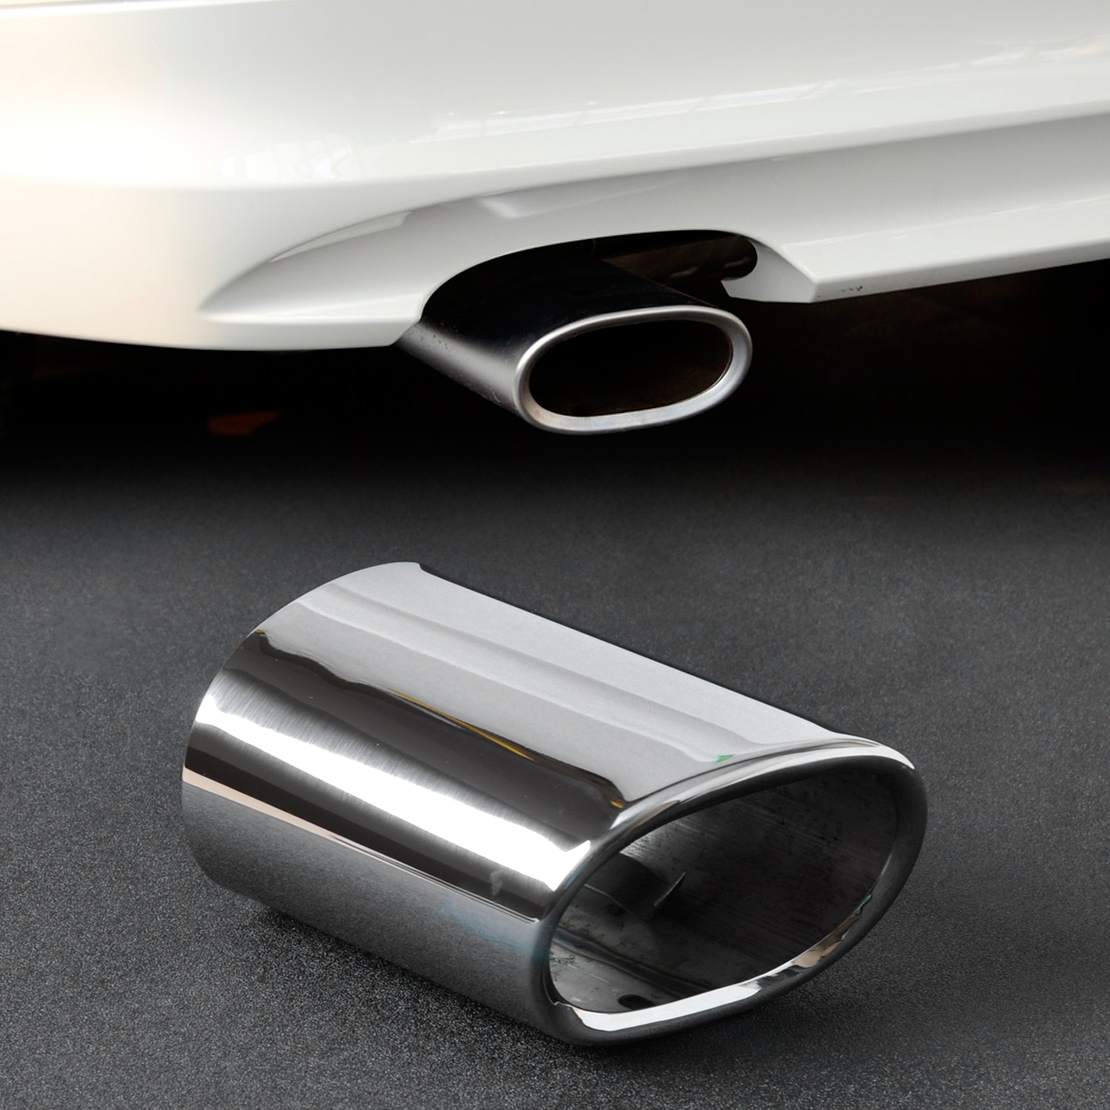 Steel Exhaust Tail Rear Muffler Tip Pipe For Bmw E90 E91